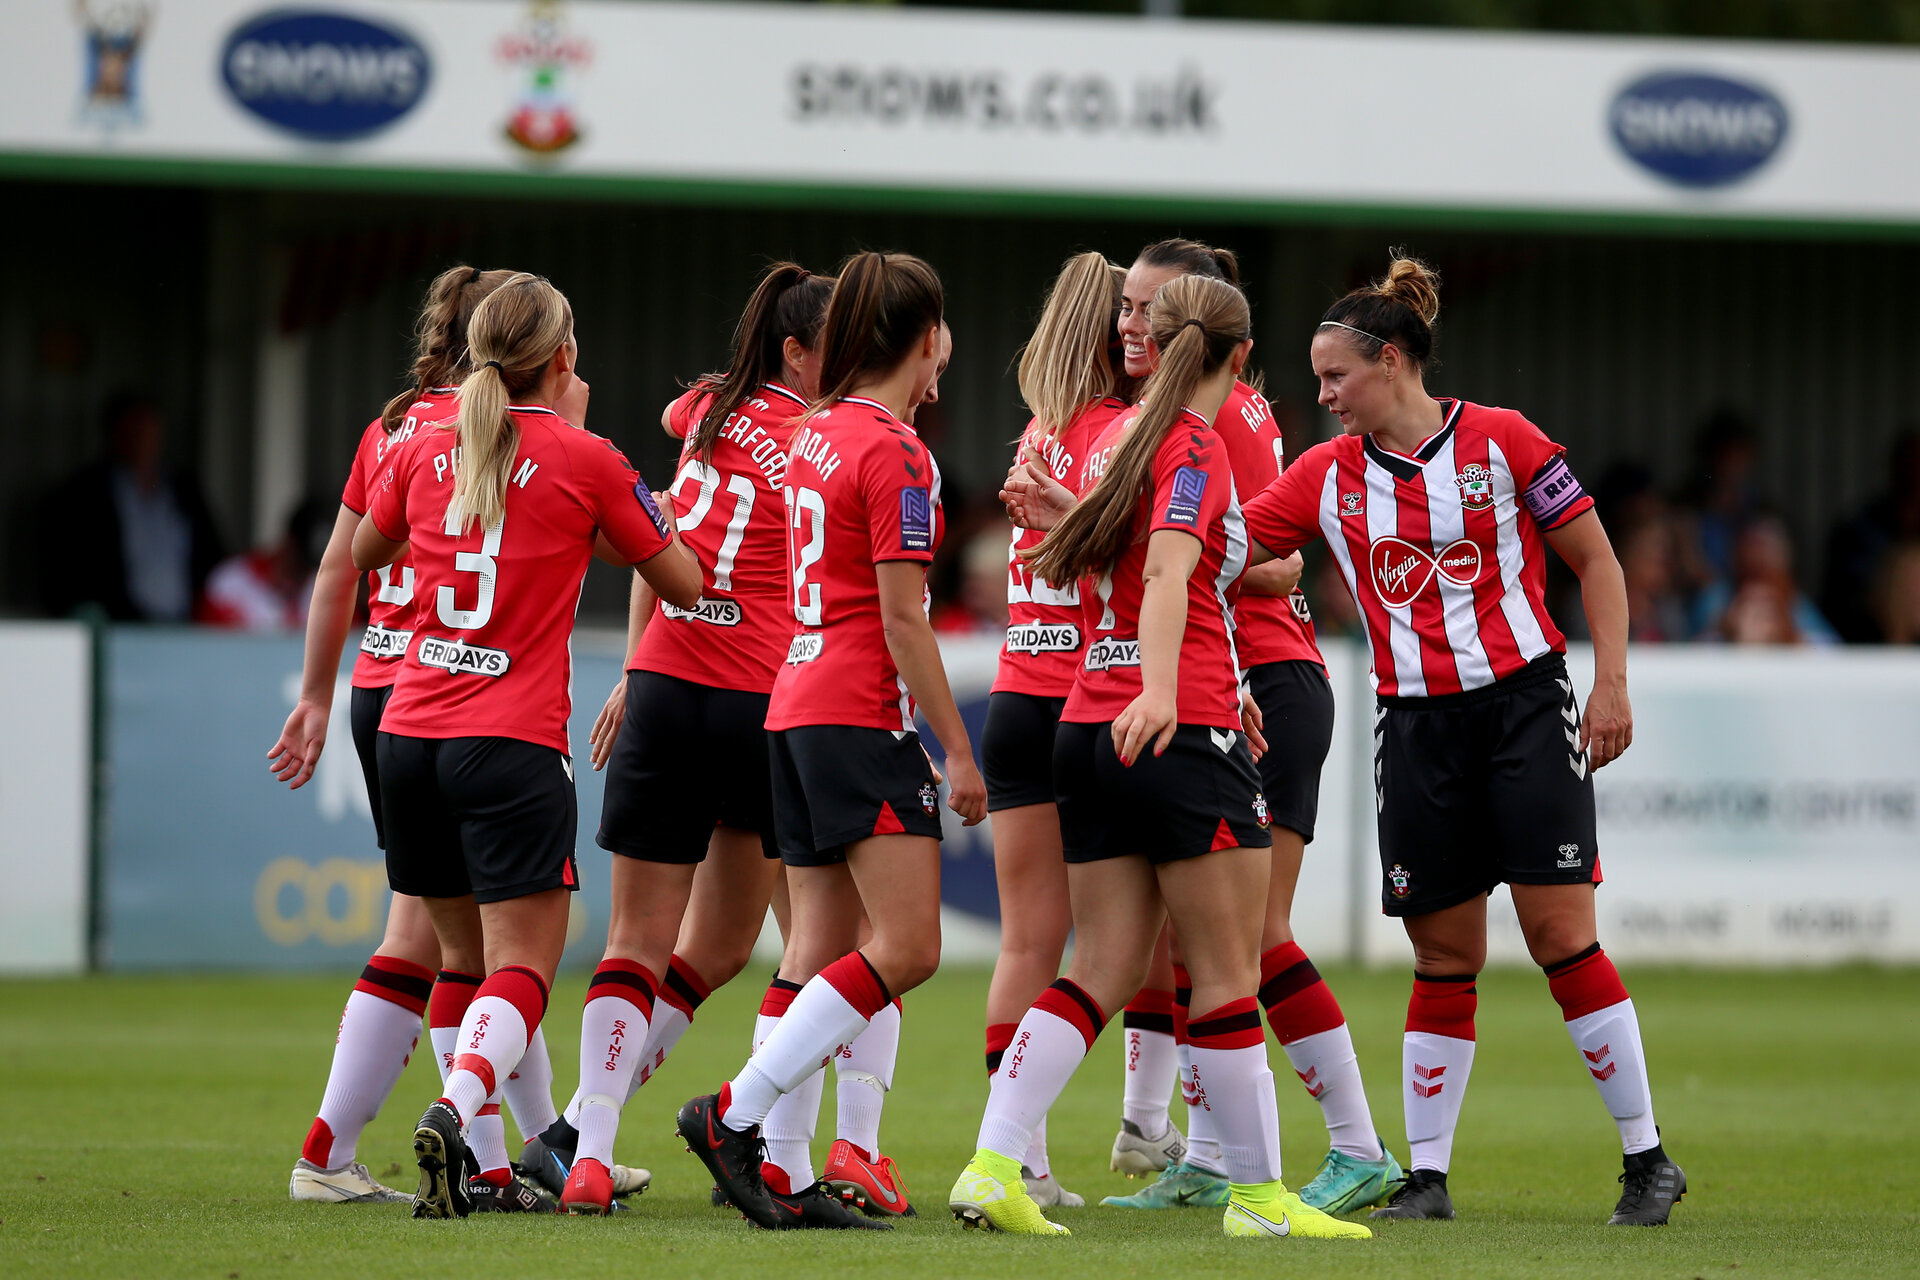 SOUTHAMPTON, ENGLAND - AUGUST 29: Southampton players celebrates after scoring another goal during Women's National League Southern Premier match between Southampton Women and Gillingham at Snows Stadium on August 29, 2021 in Southampton, England. (Photo by Isabelle Field/Southampton FC via Getty Images)